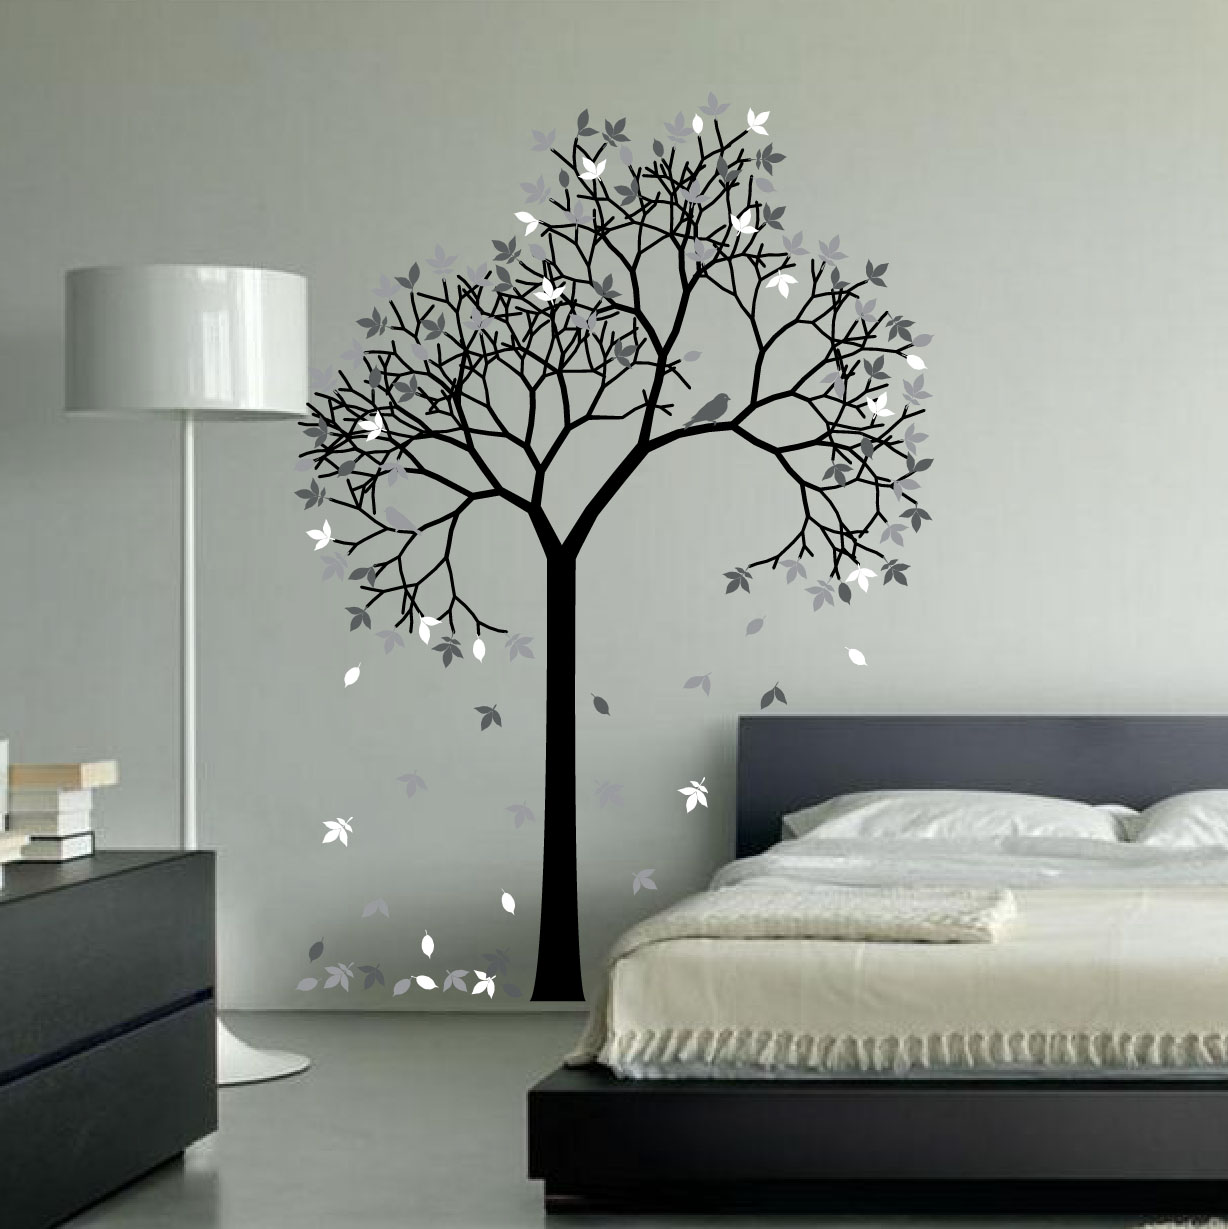 Aspen Tree Wall Decal Sticker Vinyl Nursert Art Leaves and Birds ...